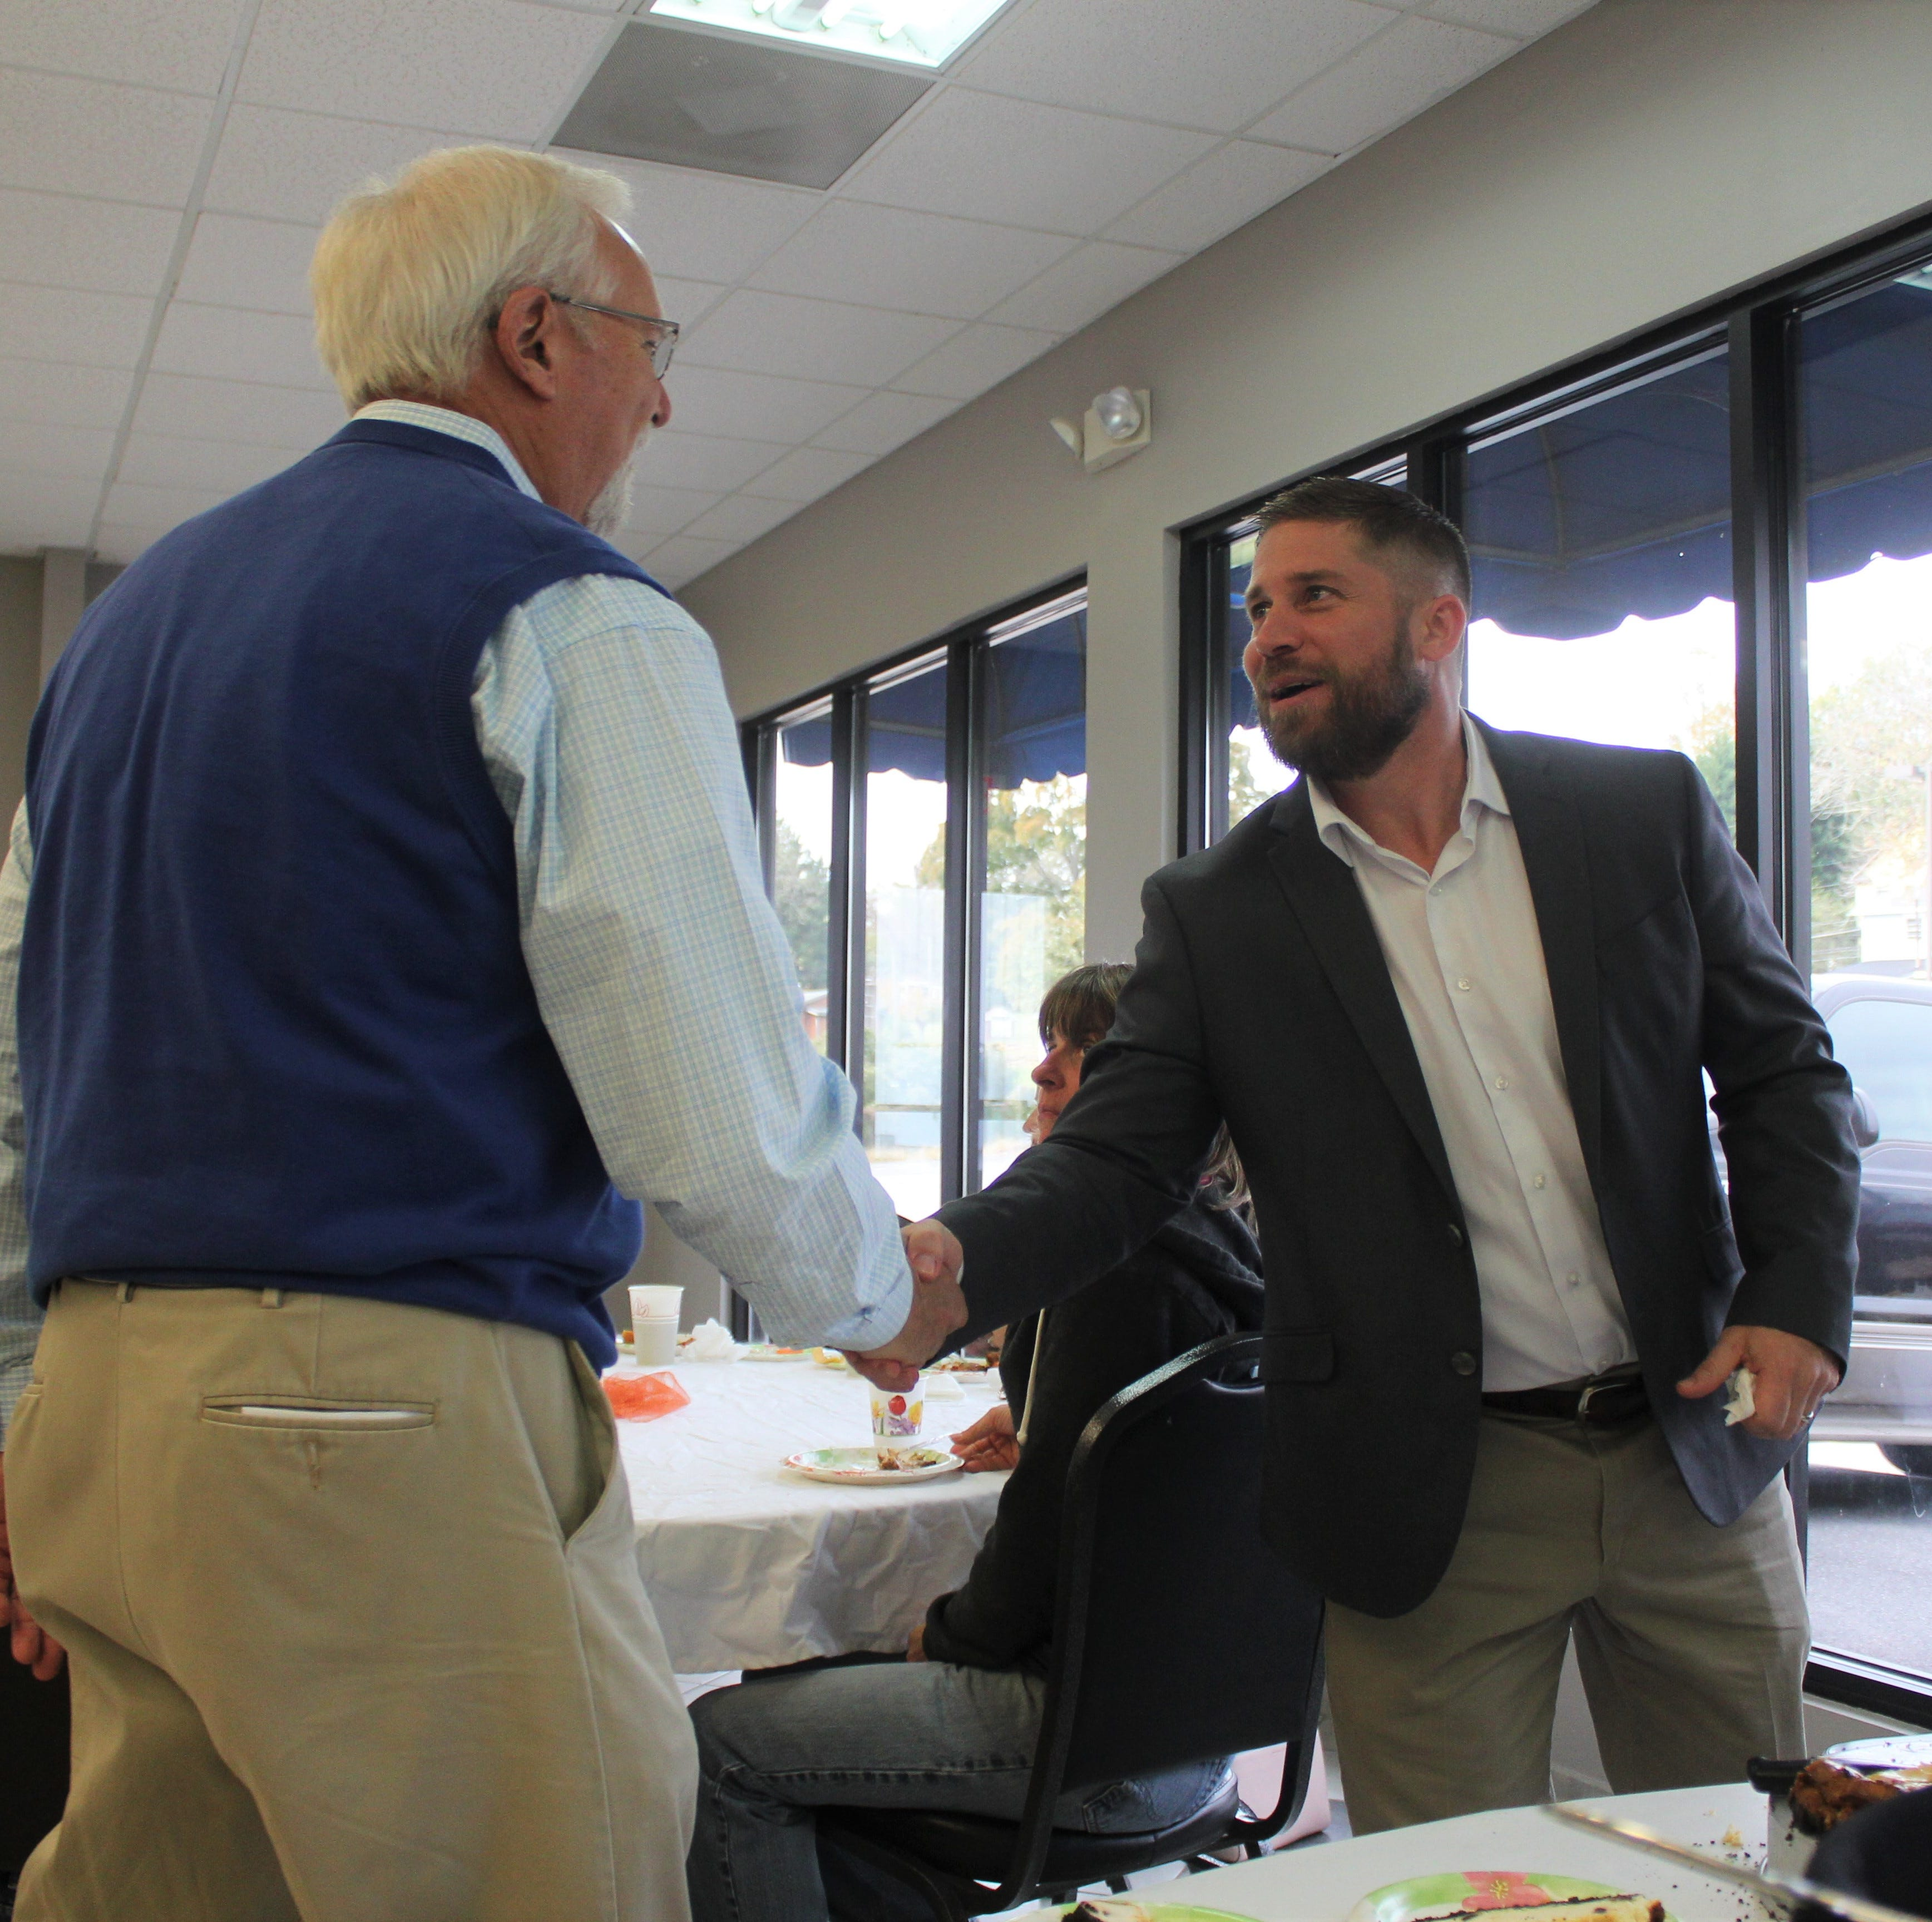 Black Mountain welcomes Josh Harrold back in new role as town manager